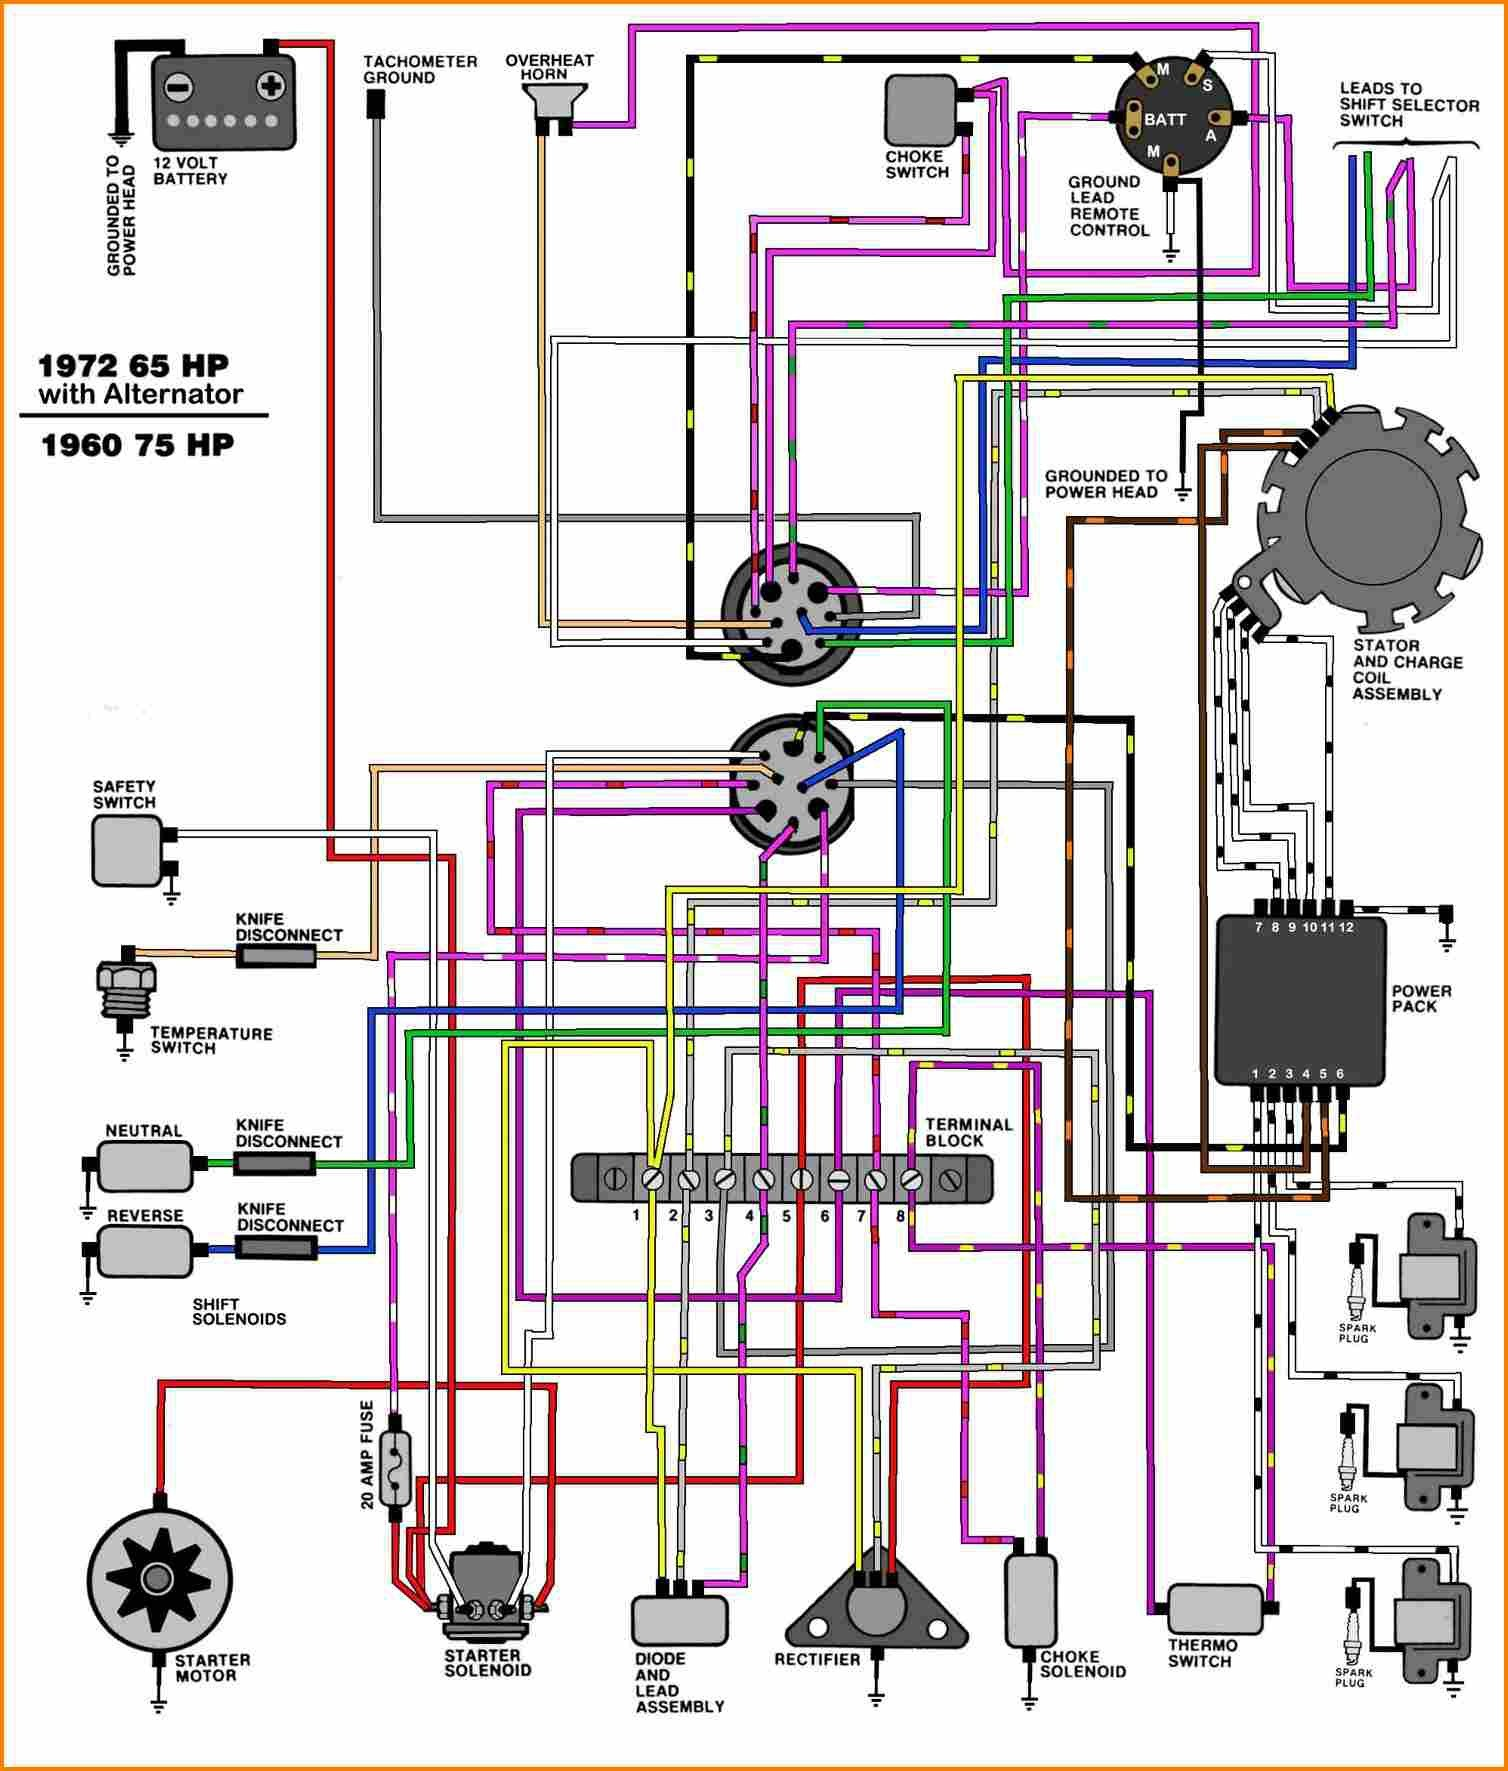 70 Chevy Ignition Wiring For Data Diagrams Images Gallery